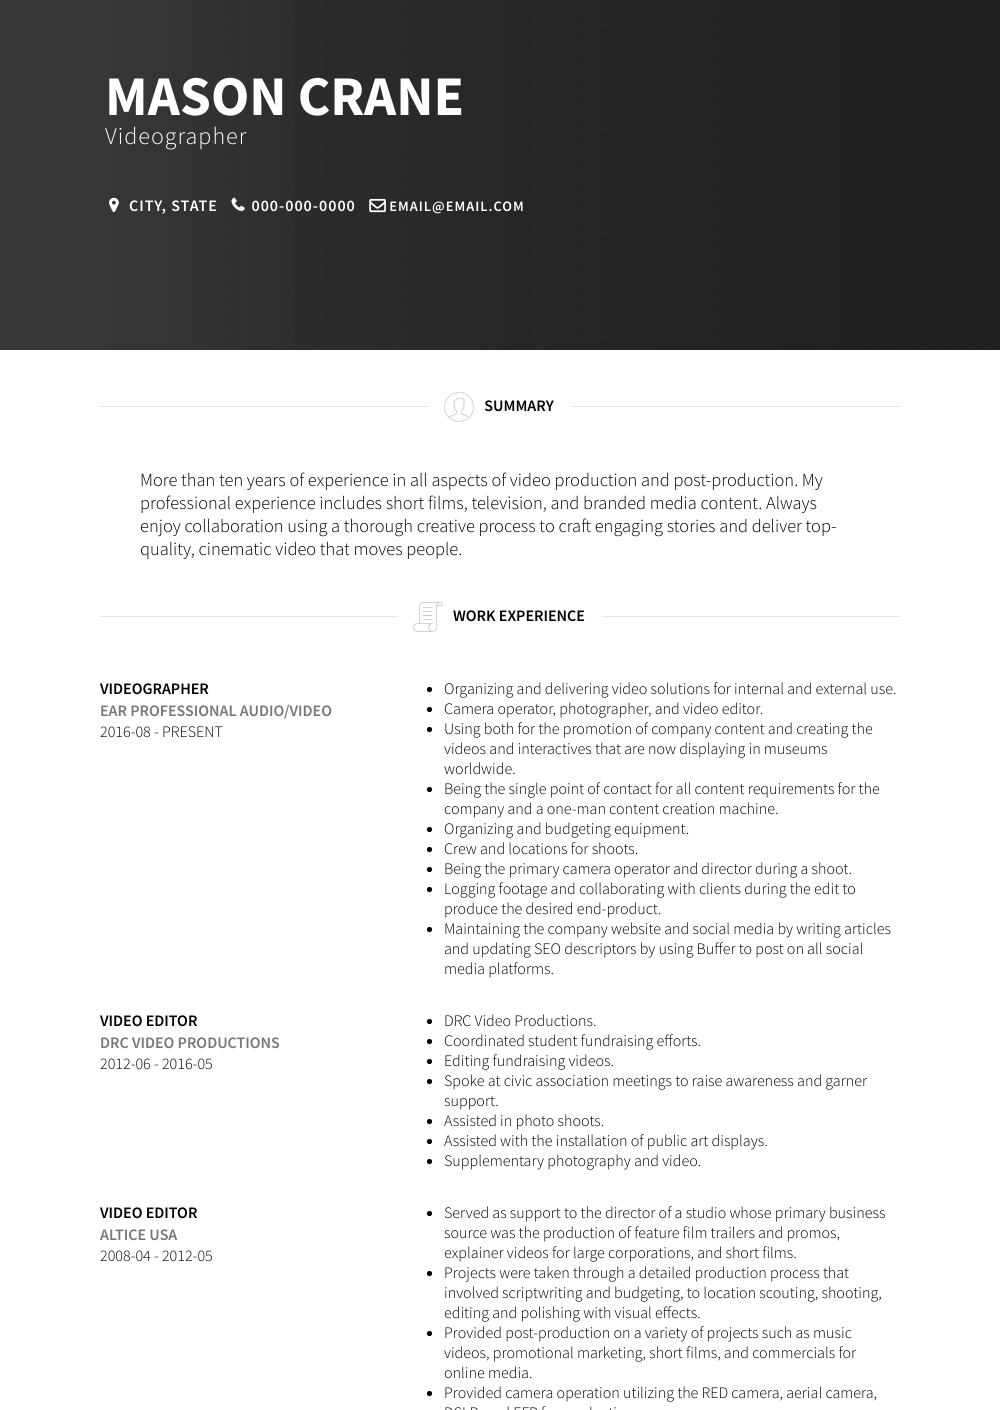 Videographer Resume Sample and Template